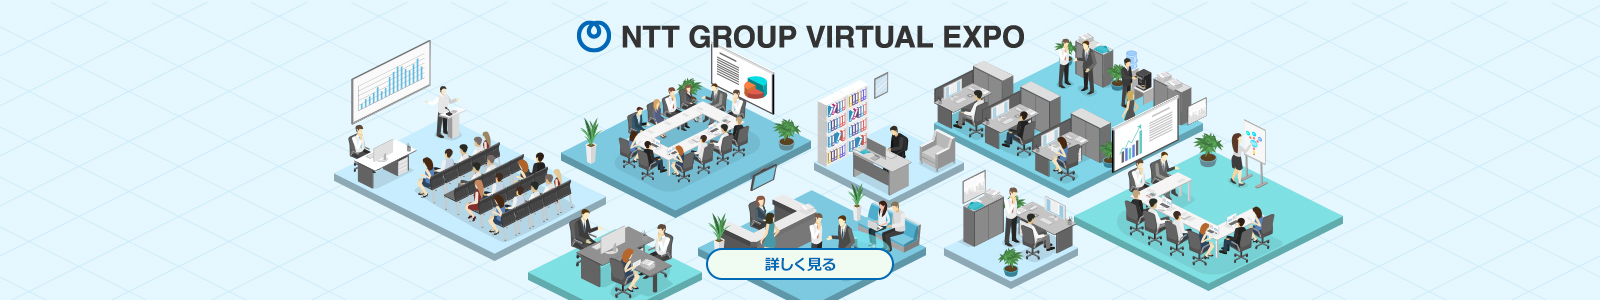 NTT GROUP VIRTUAL EXPO 詳しく見る